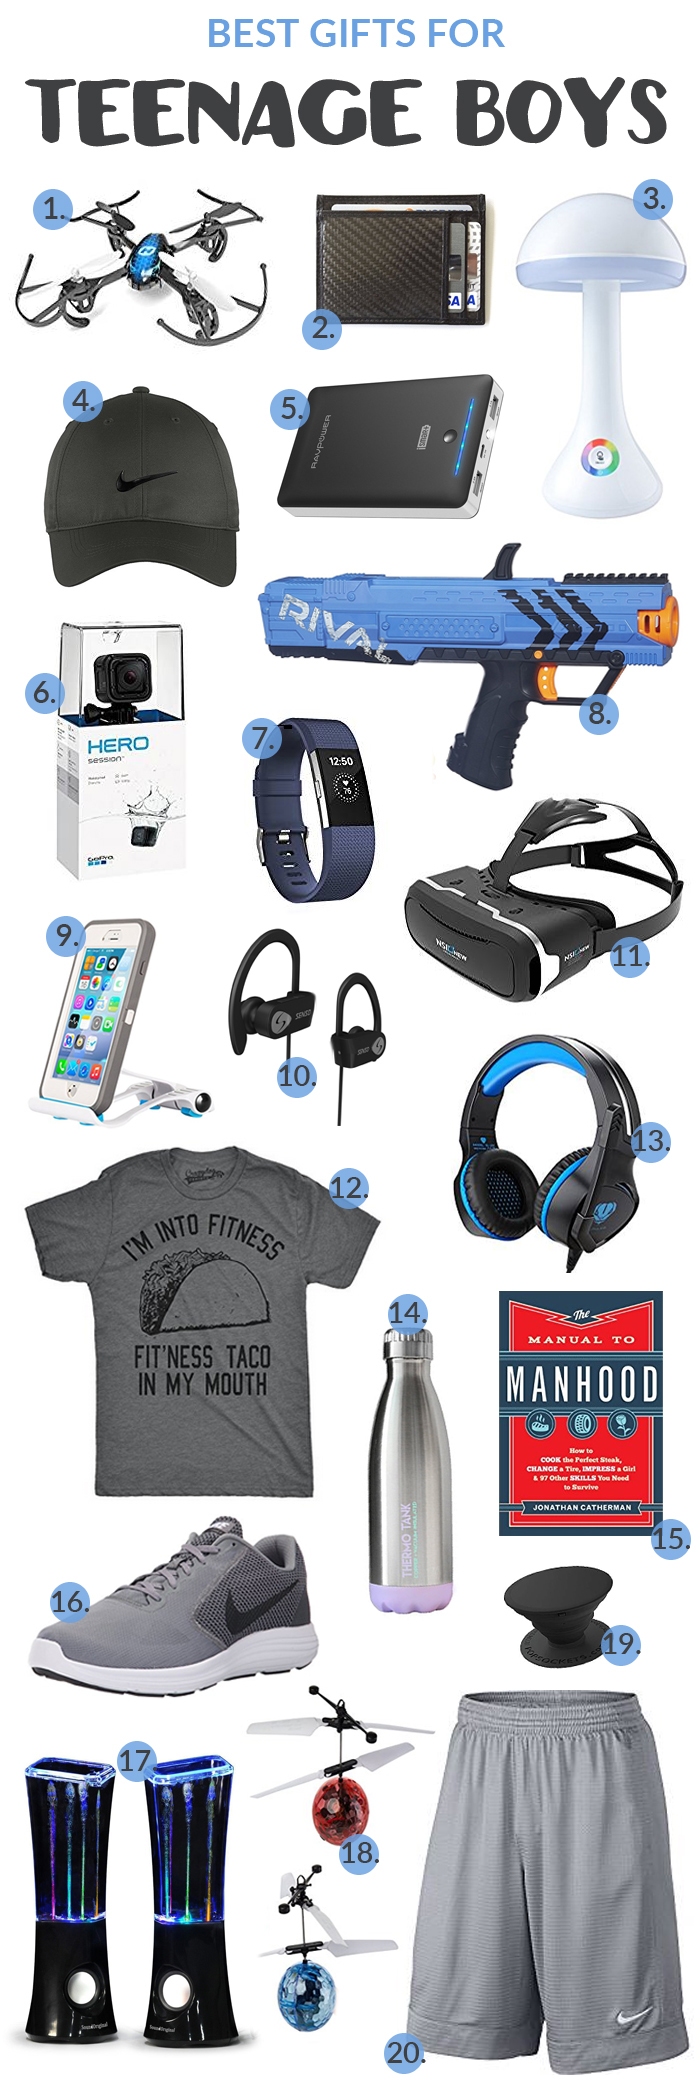 Best Gifts for Teenage Boys